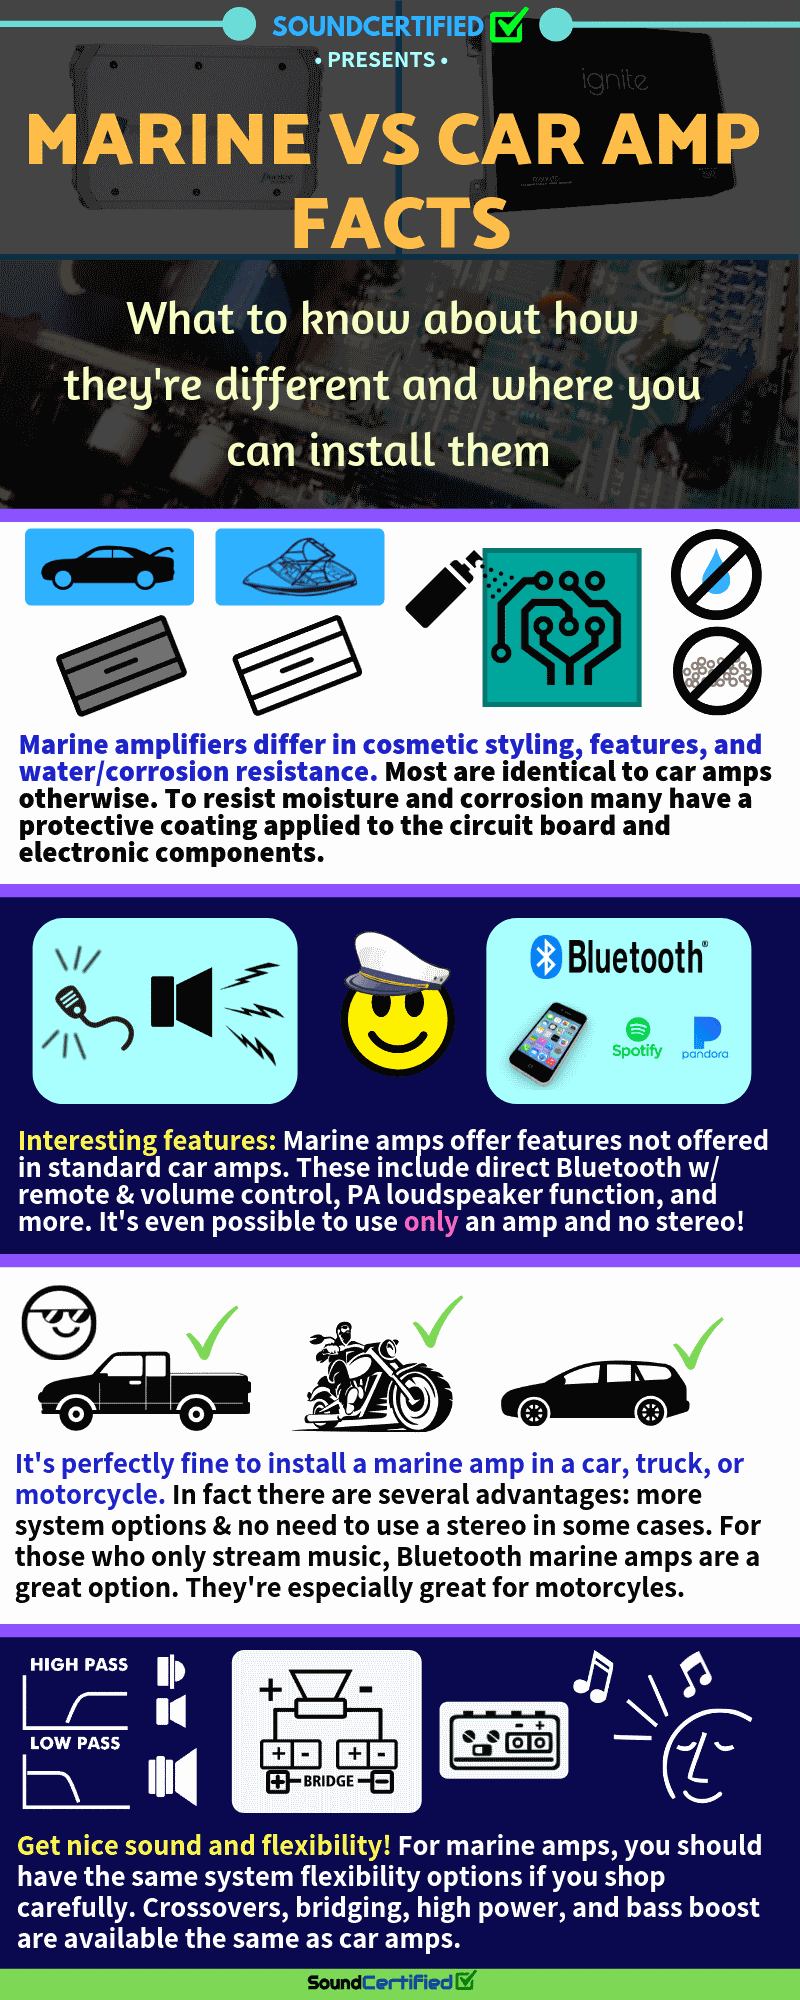 Marine Amp Vs Car Amp Differences - Can You Use A Marine Amp ... on